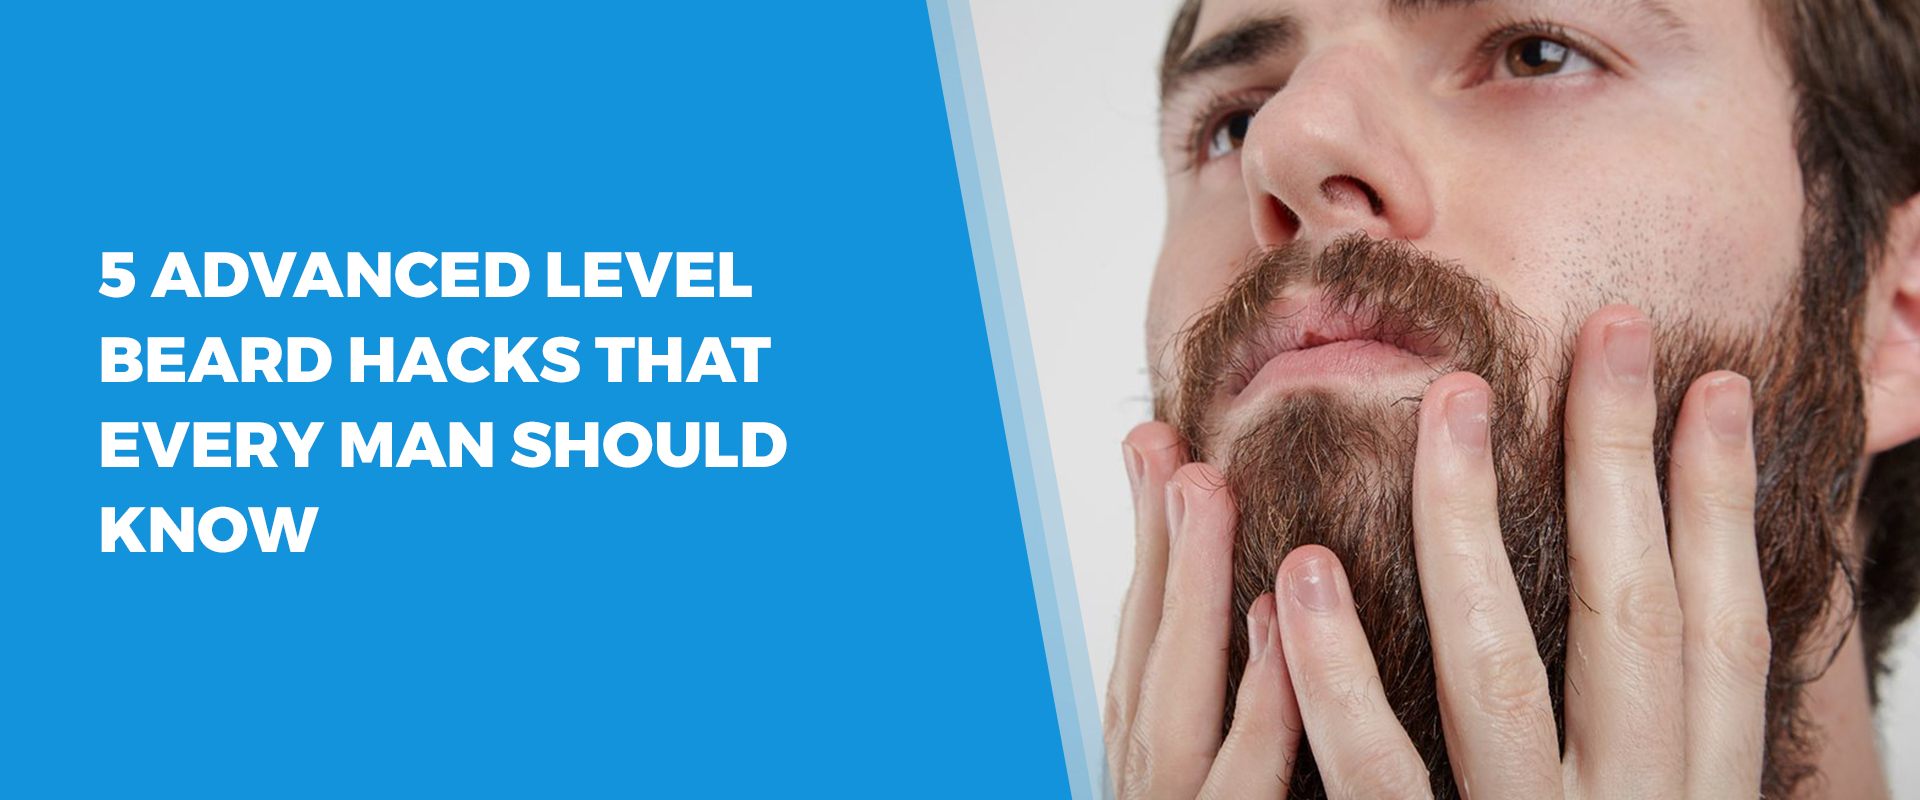 5 Advanced Level Beard Hacks That Every Man Should Know